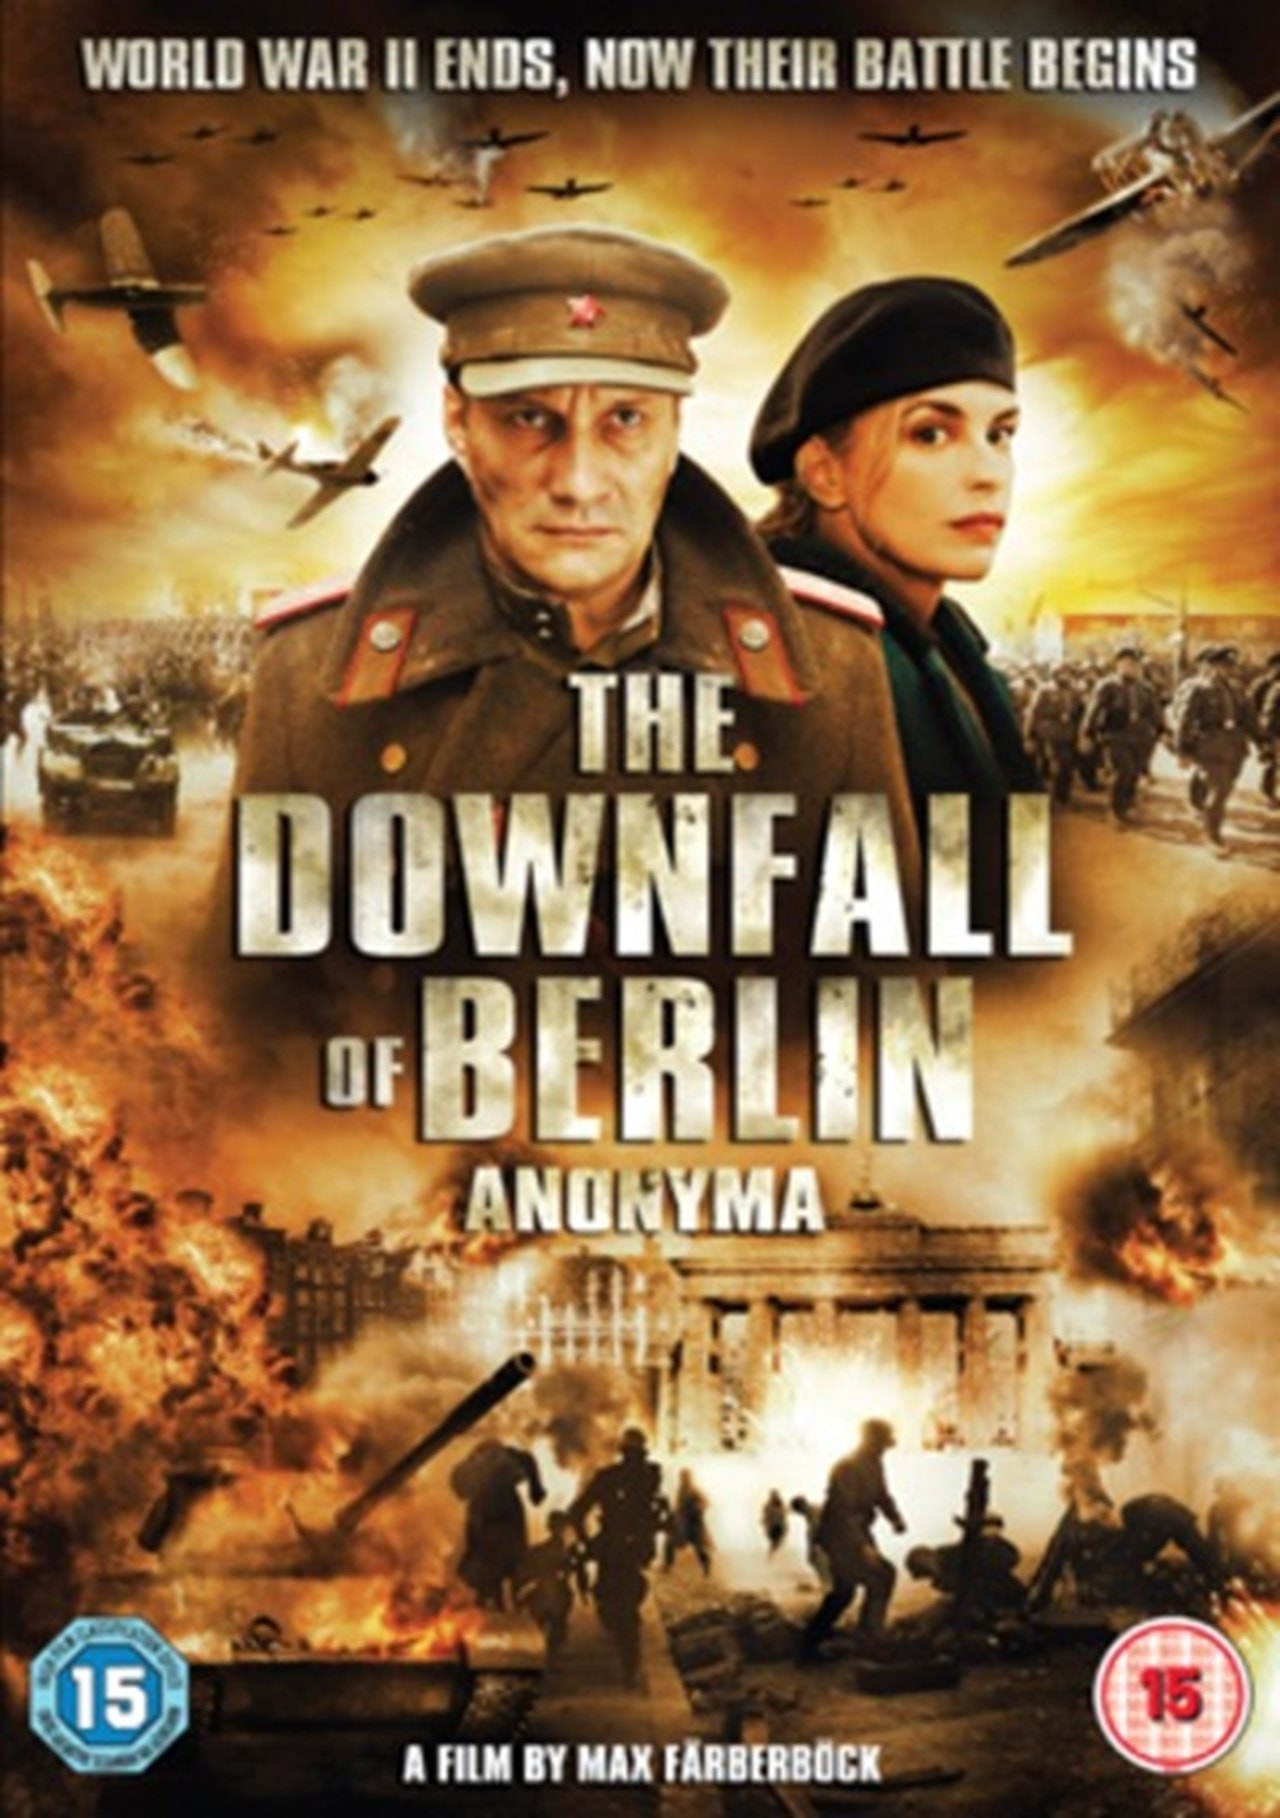 Anonyma - The Downfall of Berlin - 1